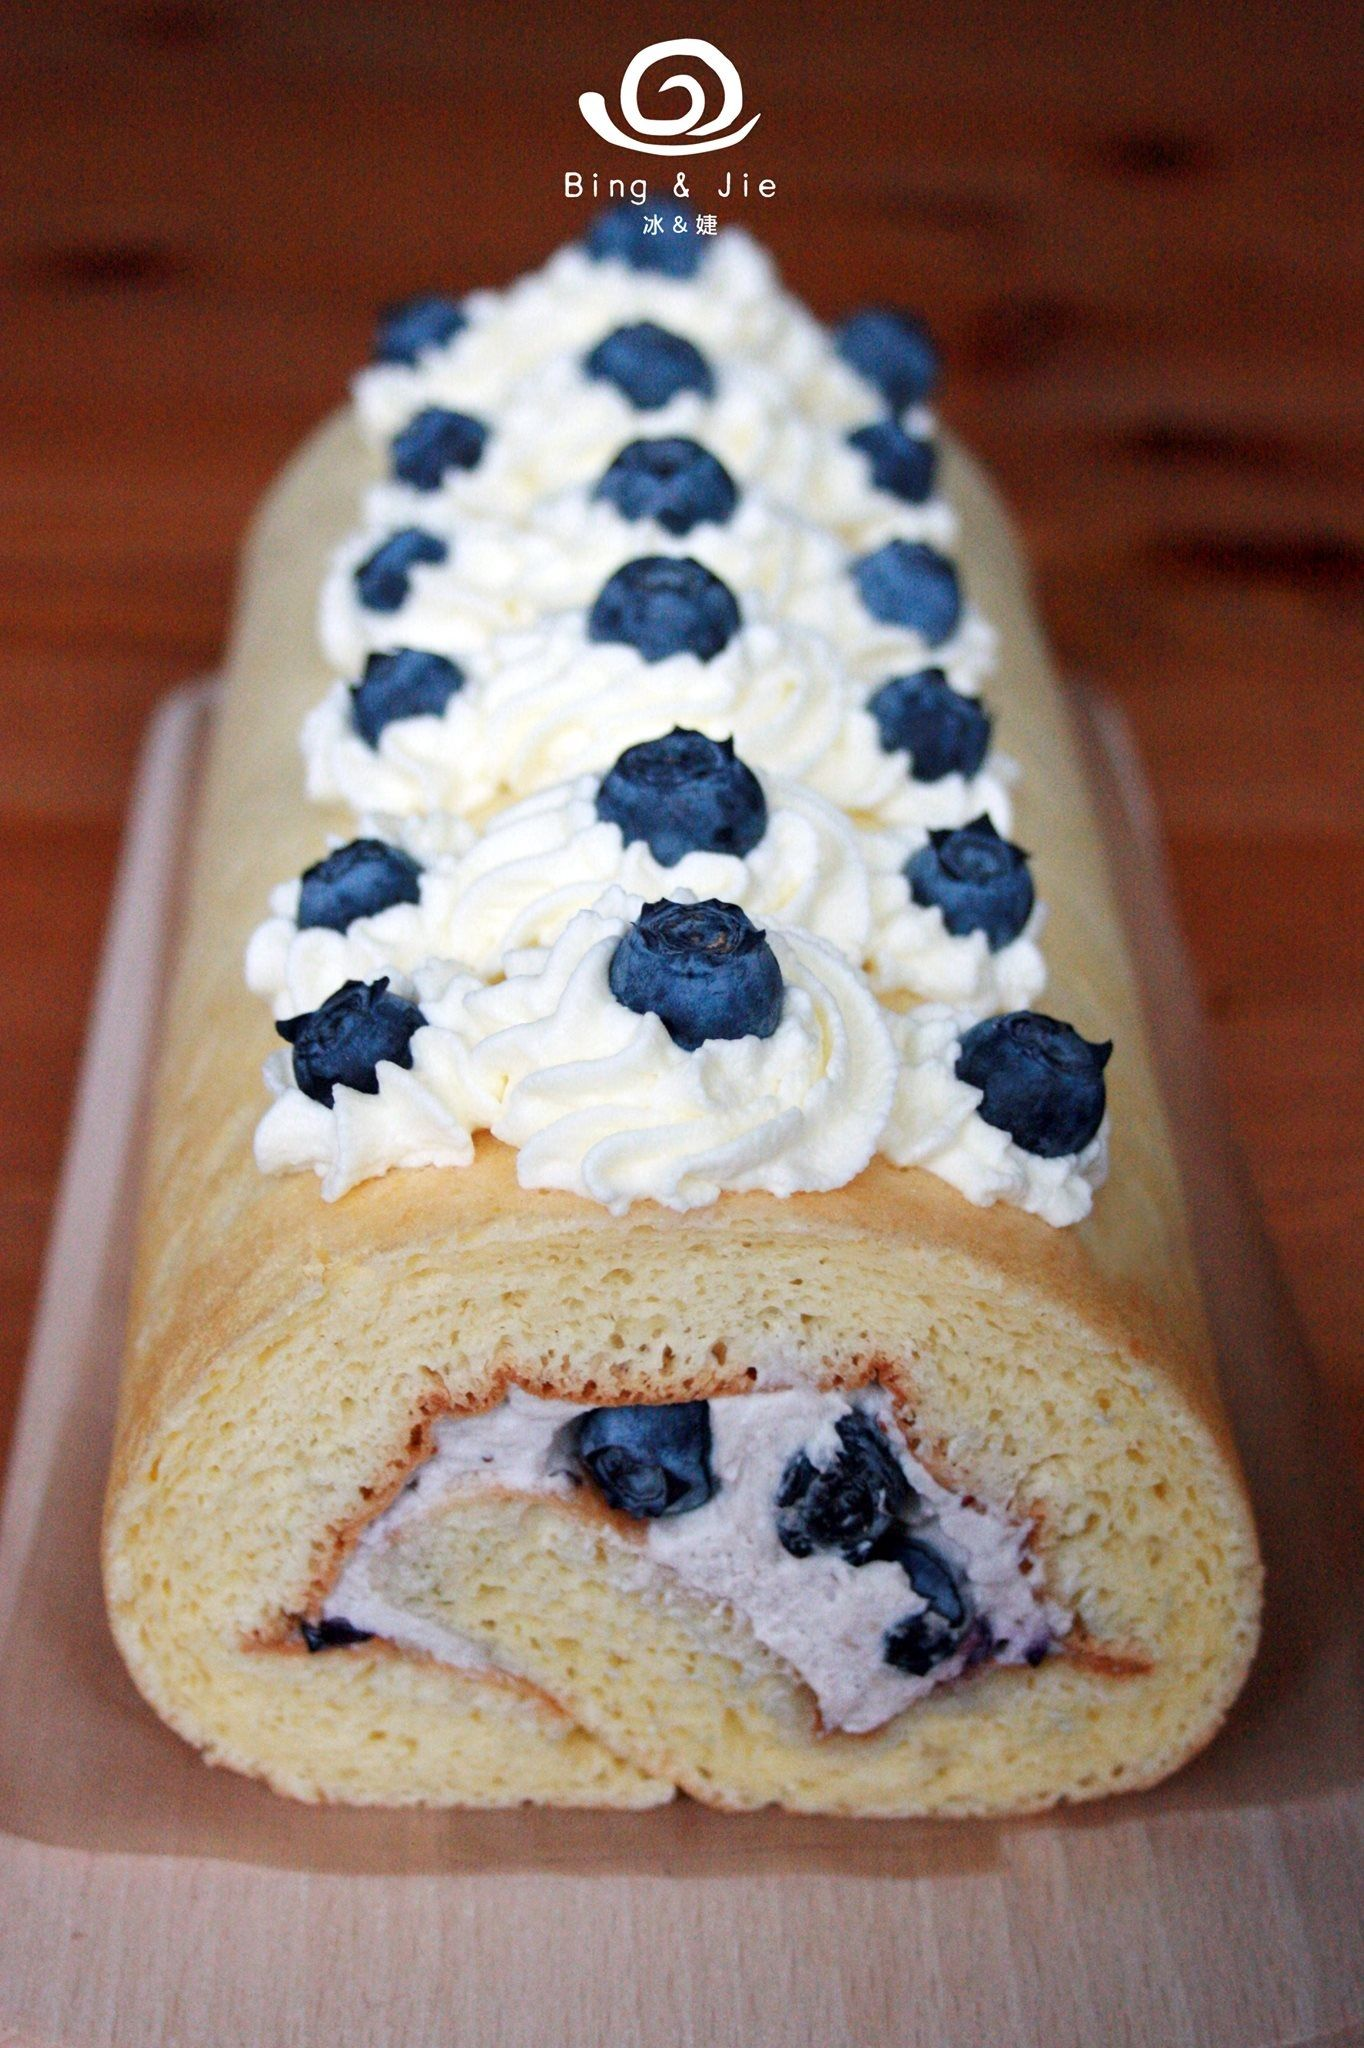 Blueberry Cake Roll https://www.facebook.com/bingjiecake